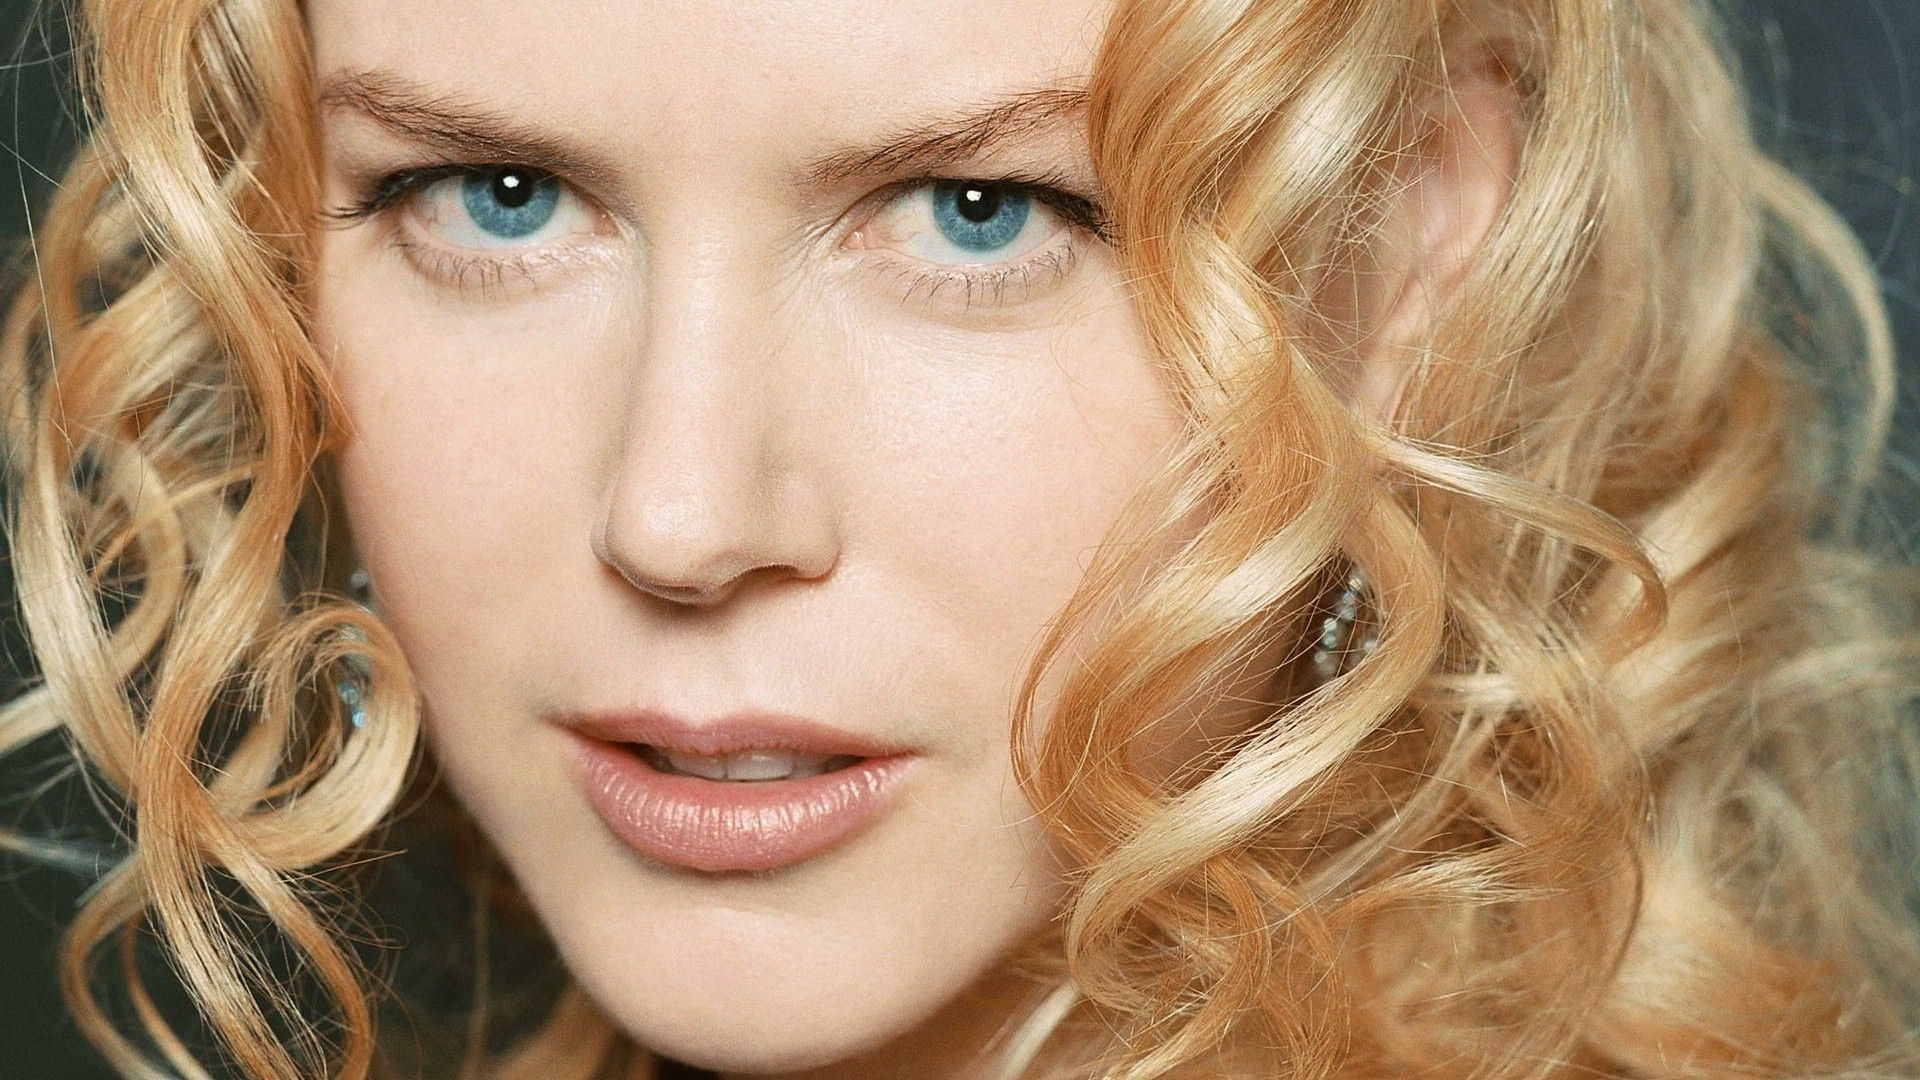 Nicole Kidman Sexy HD Wallpapers, hot HD Images, Pics, Photos